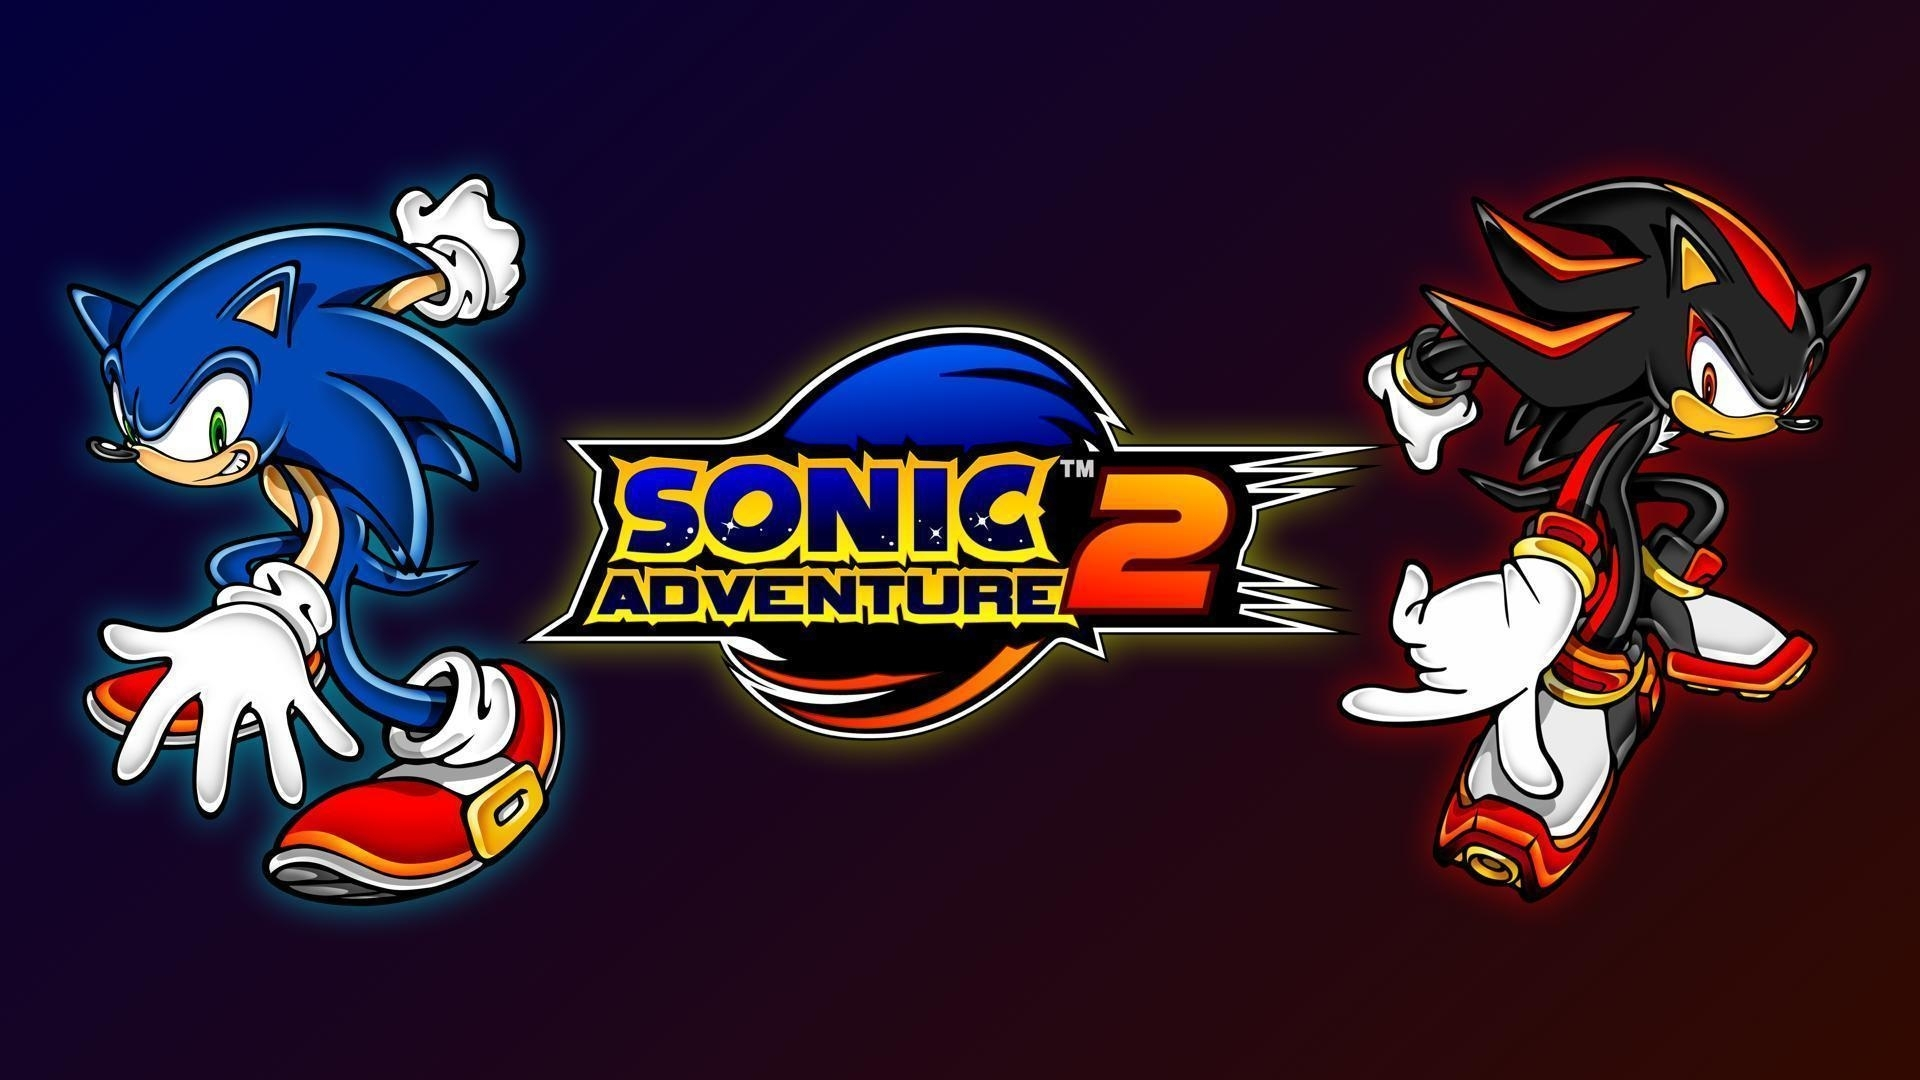 sonic adventure 2 wallpapers - wallpaper cave